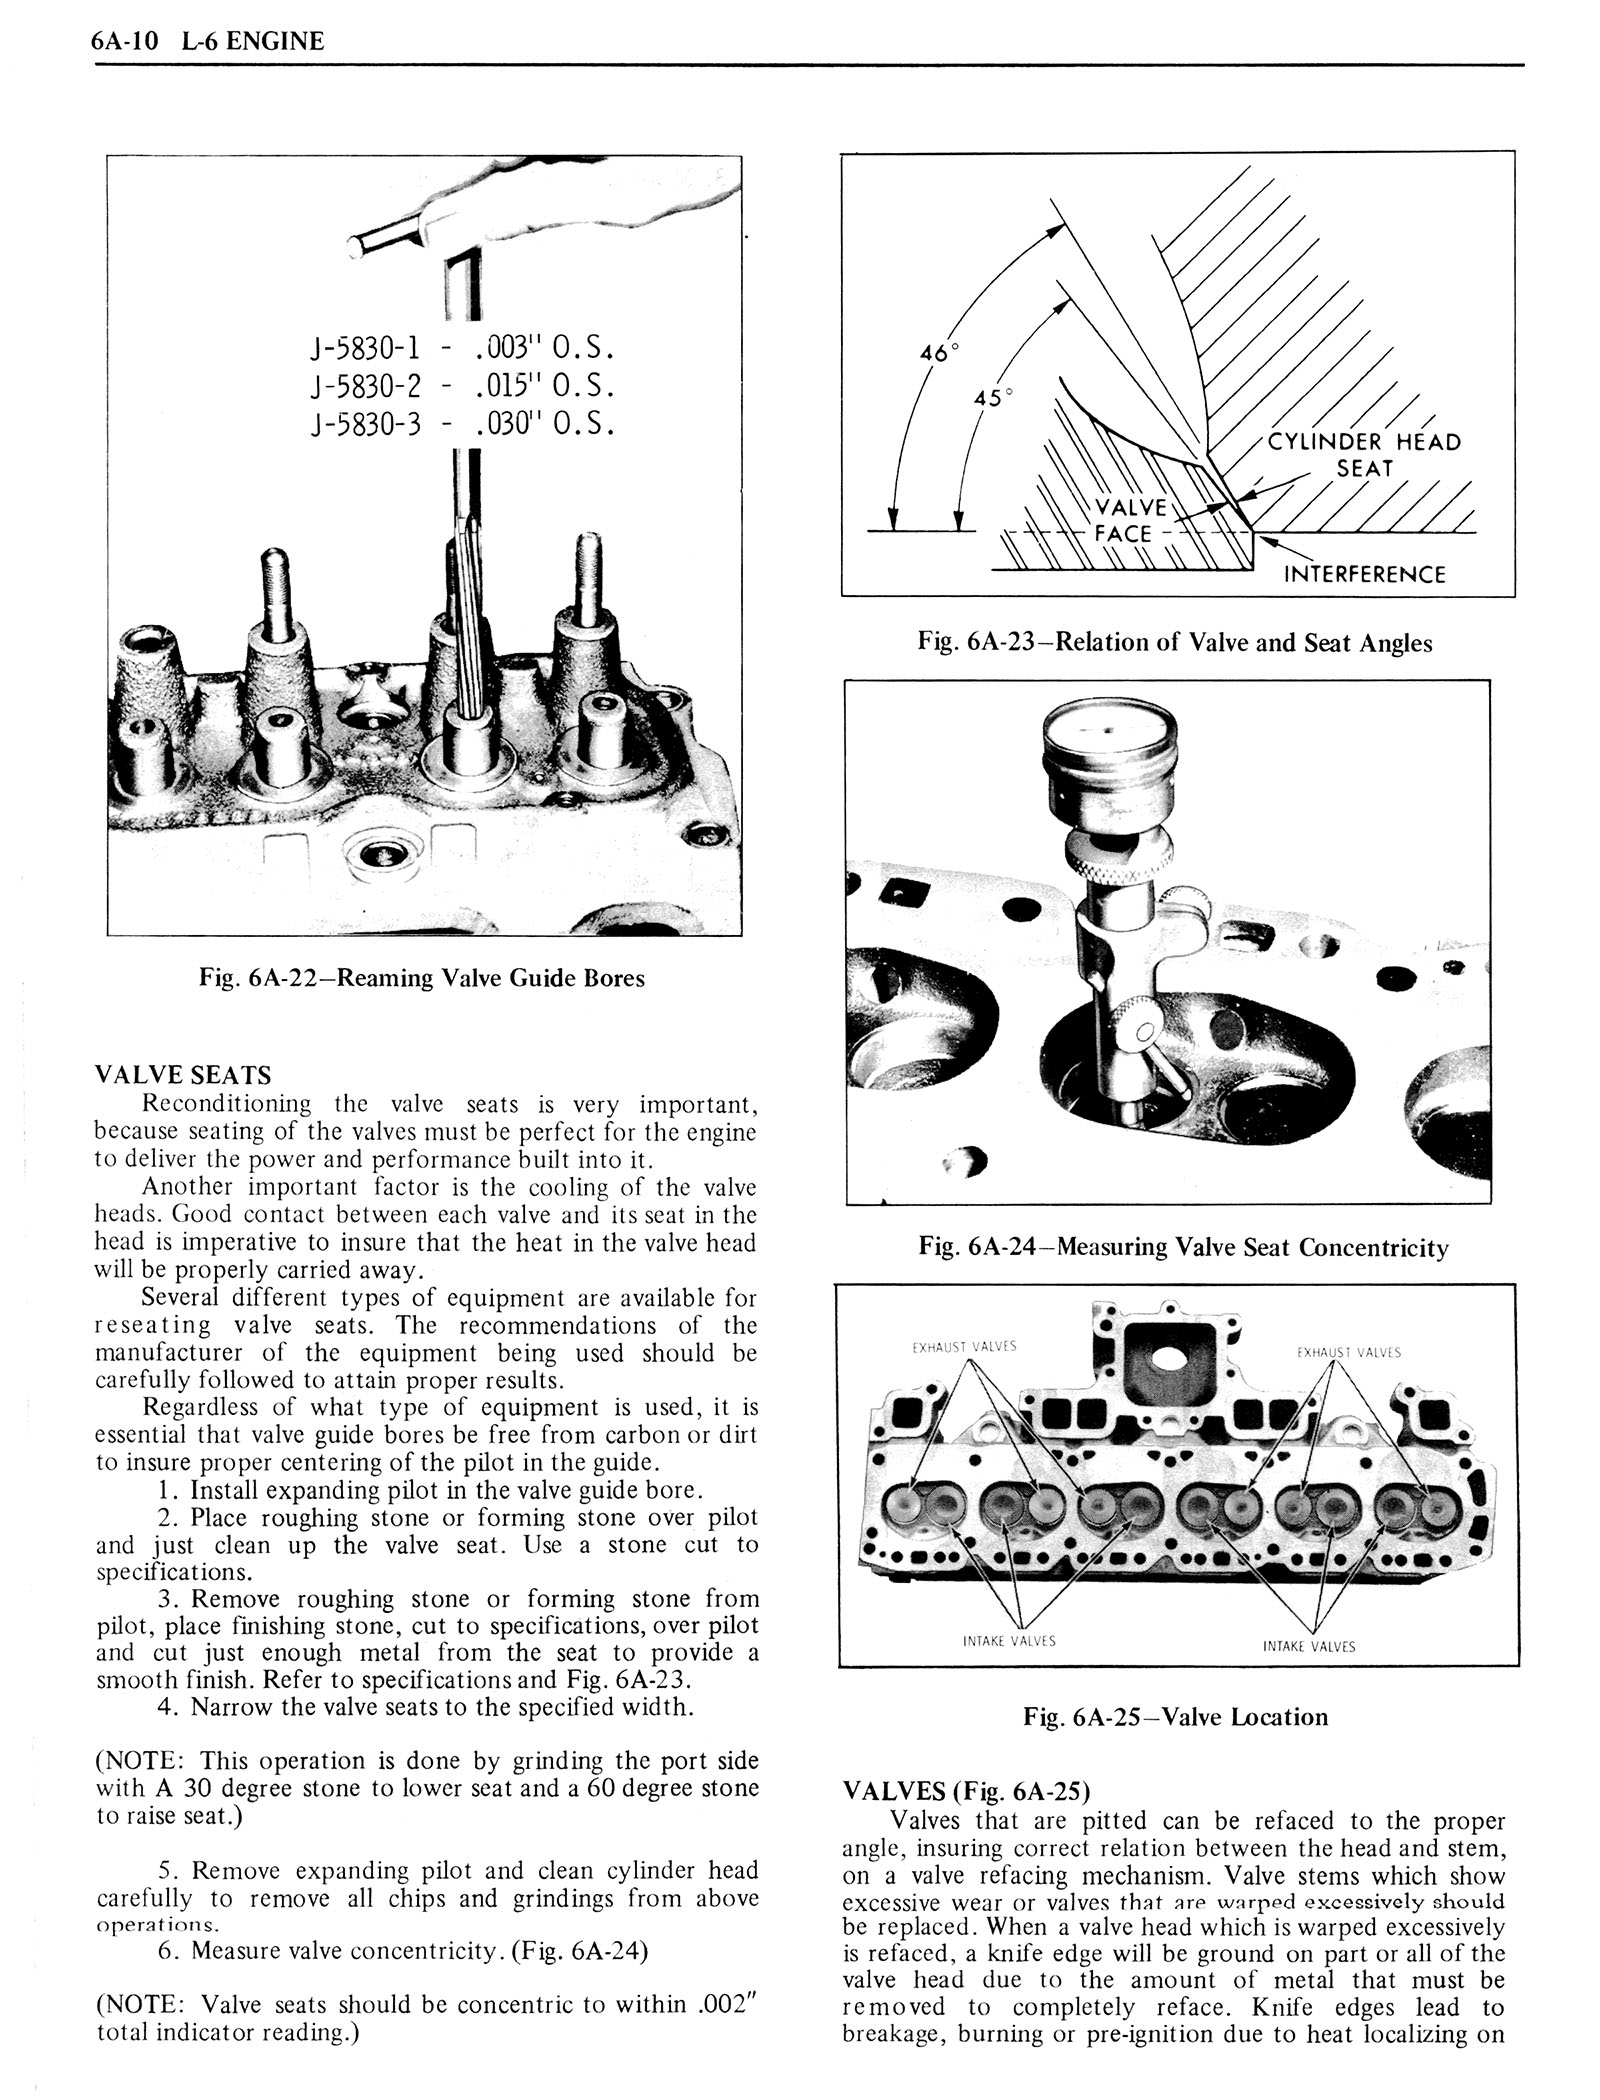 1976 Oldsmobile Service Manual page 407 of 1390